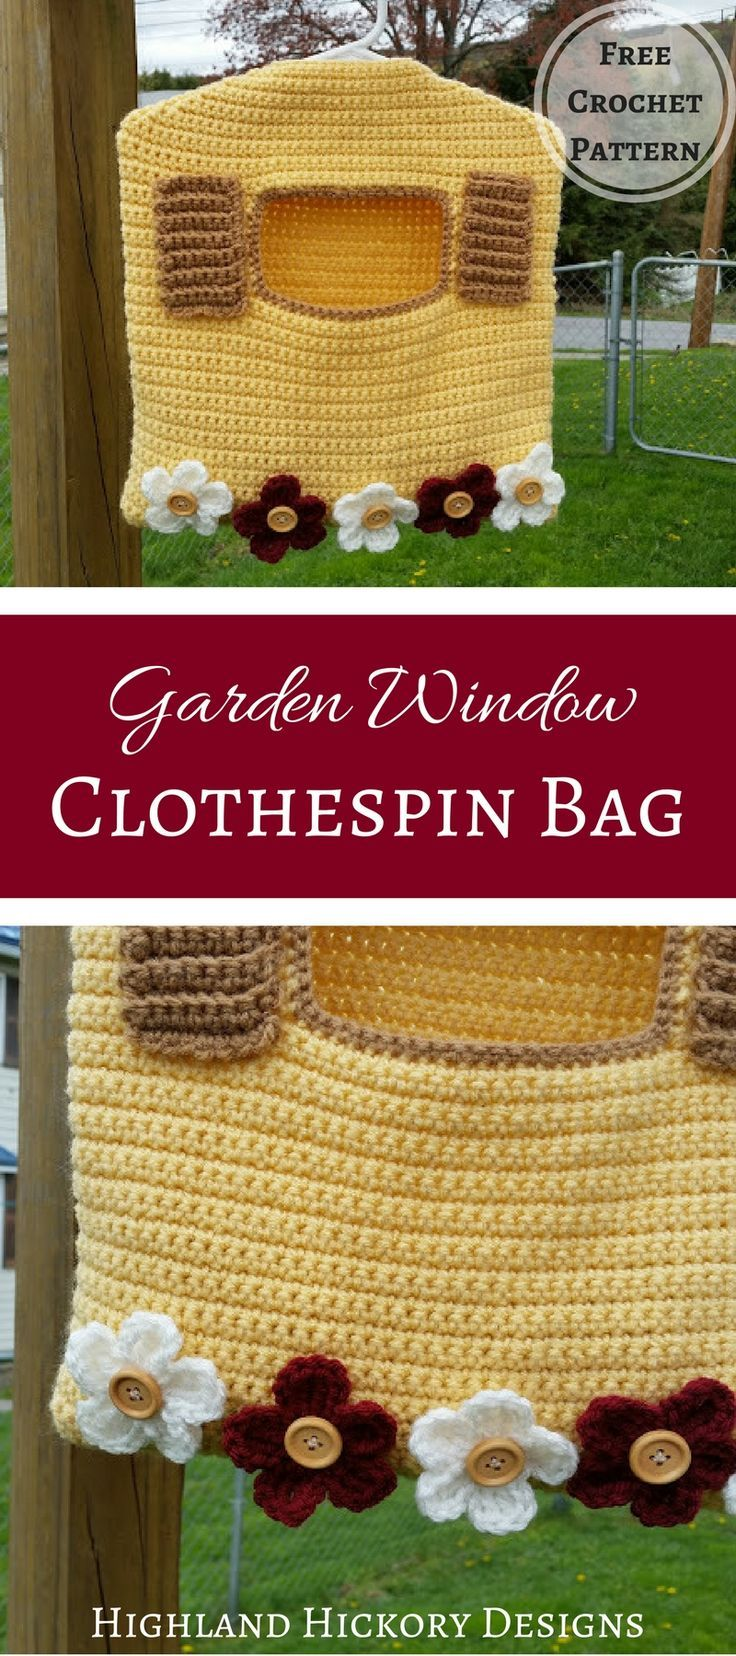 Garden Window Clothespin Bag Free Crochet Patterns From My